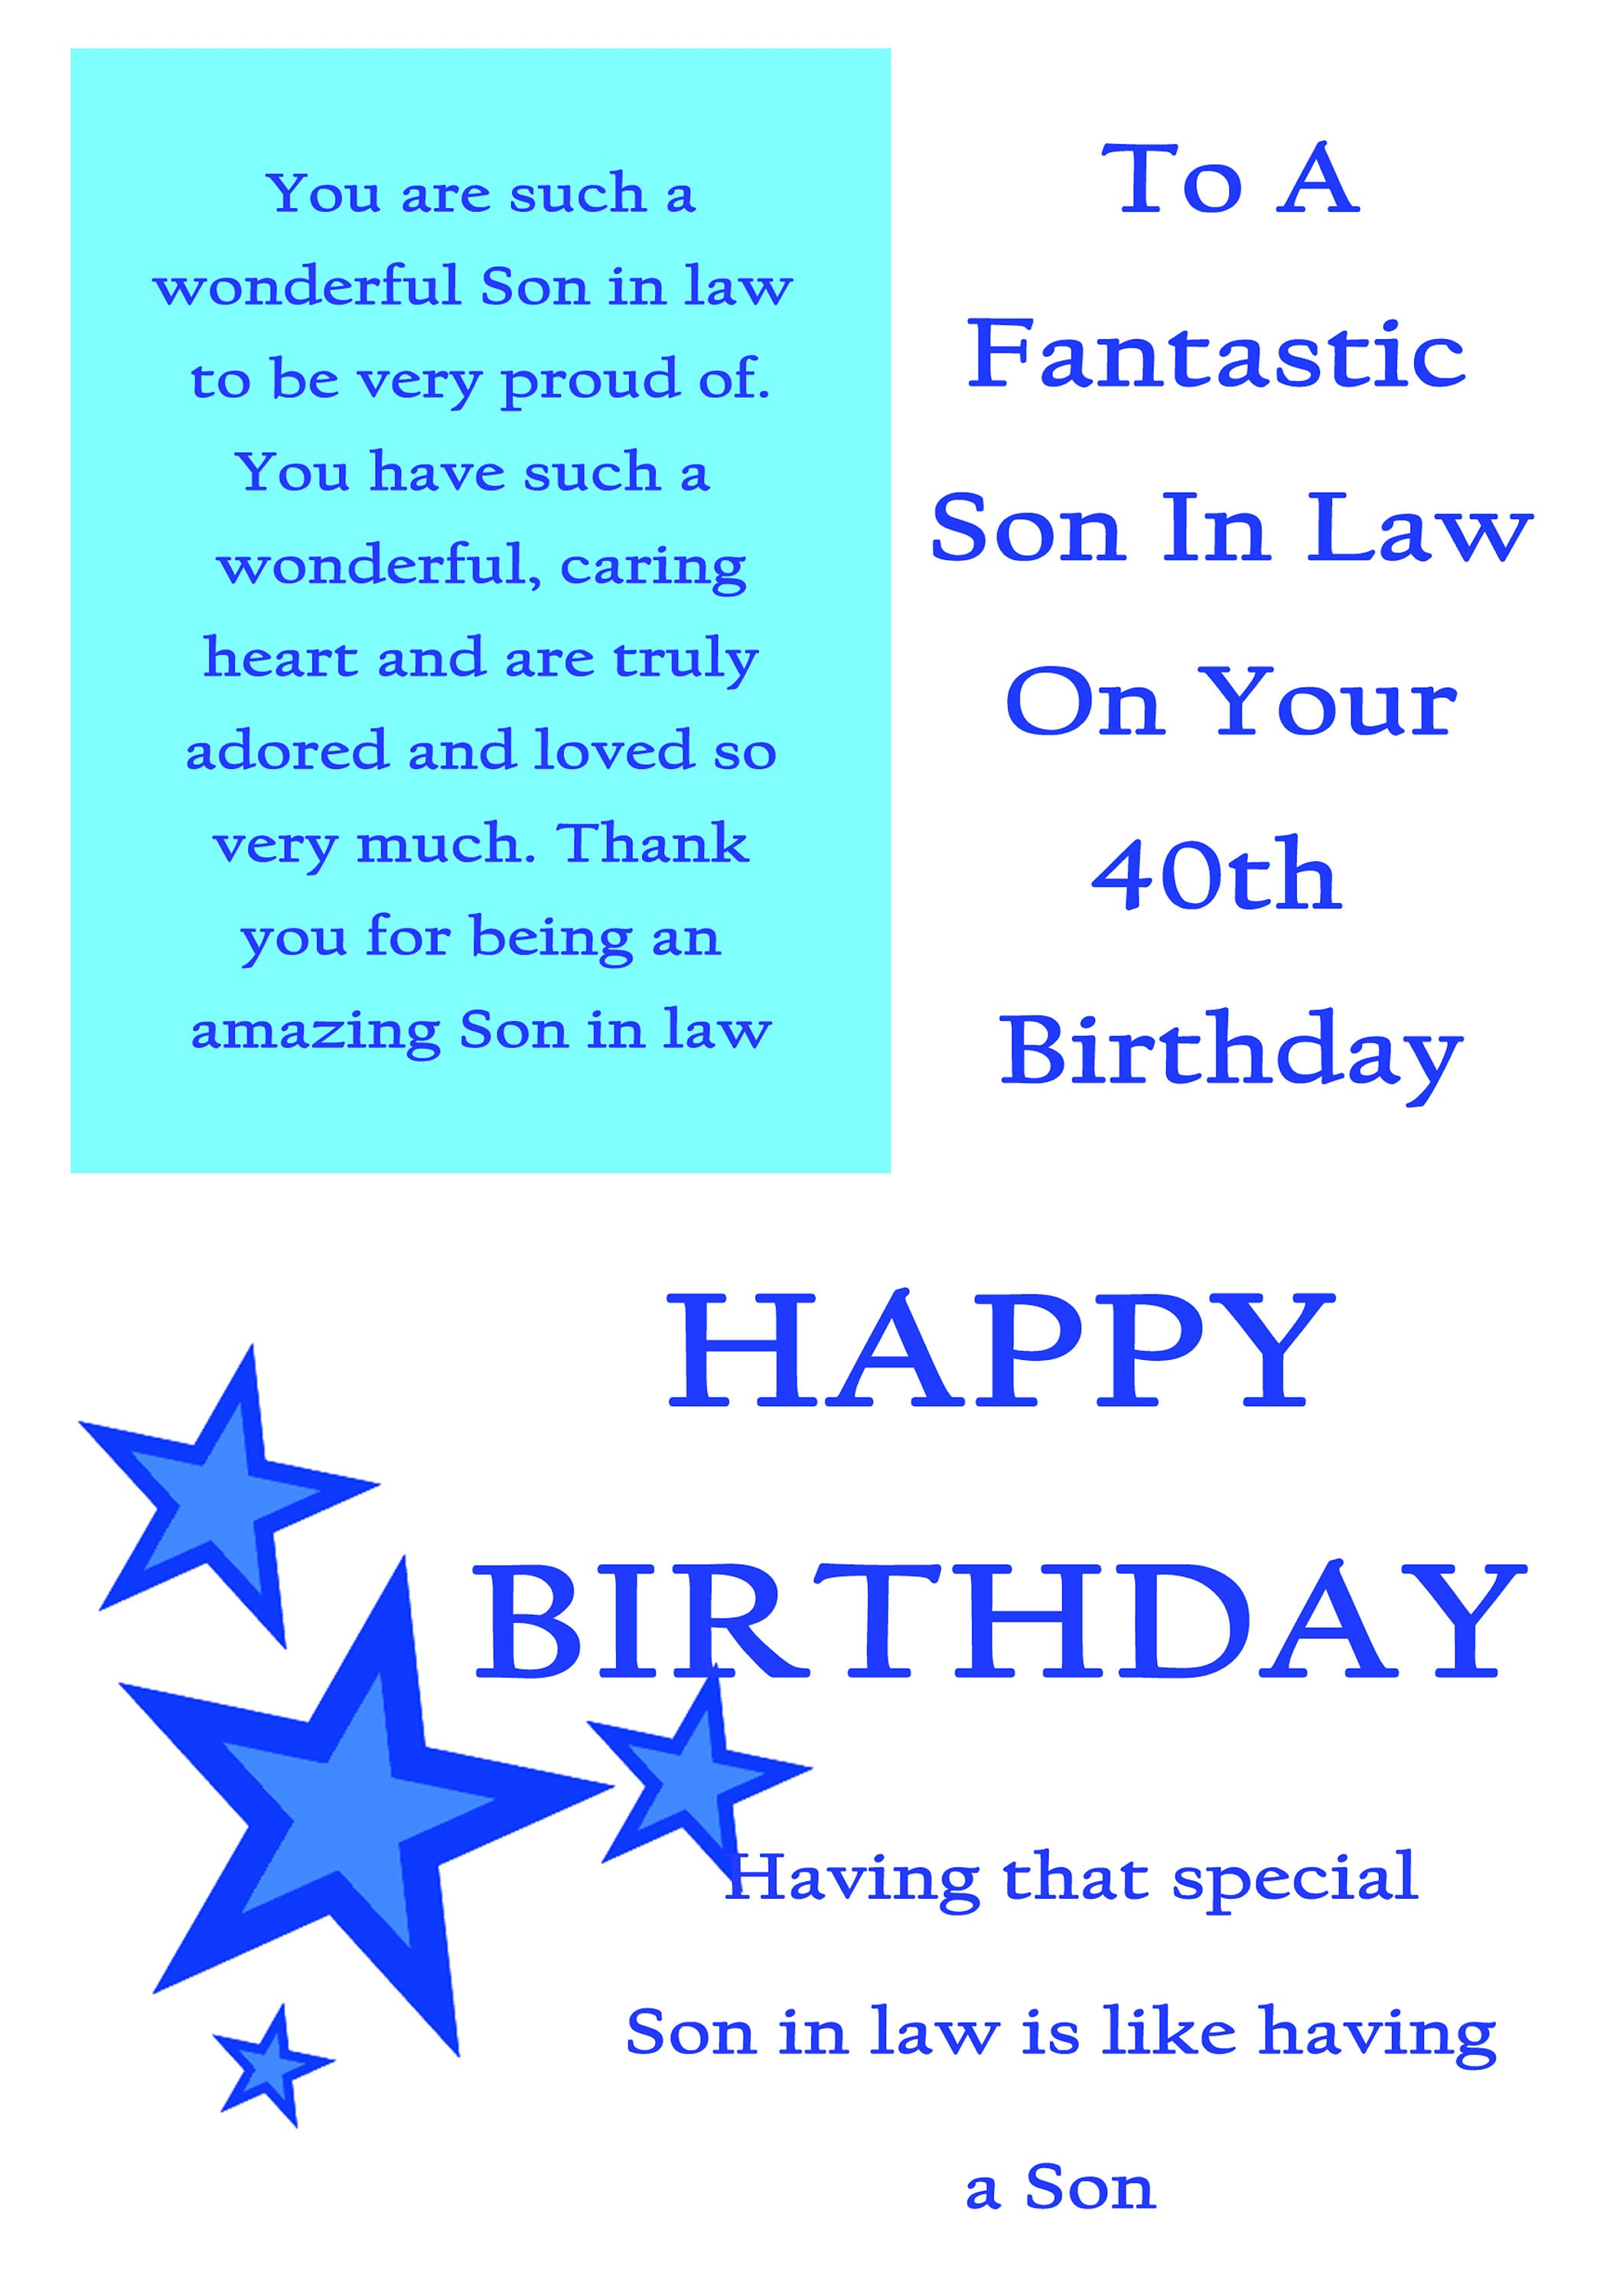 Son In Law 40 Birthday Card With Removable Laminate